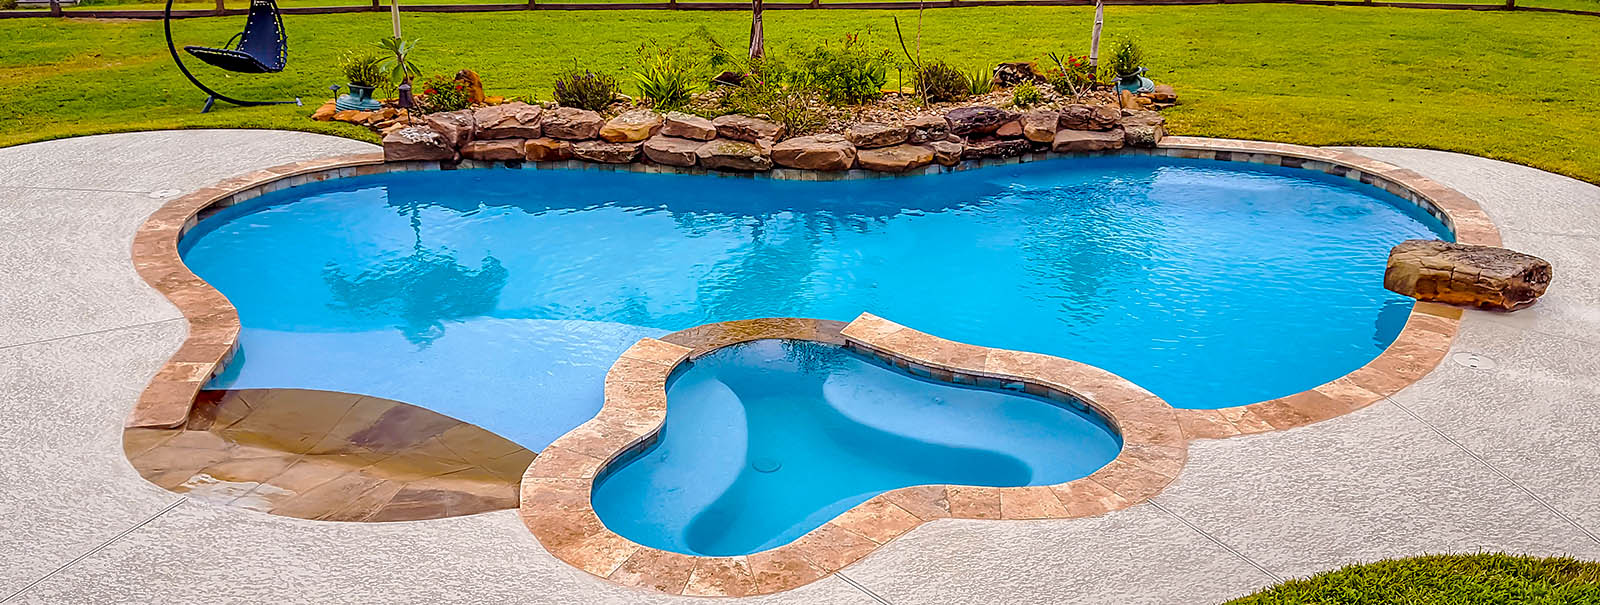 Reviews - Blue Haven Custom Swimming Pool and Spa Builders